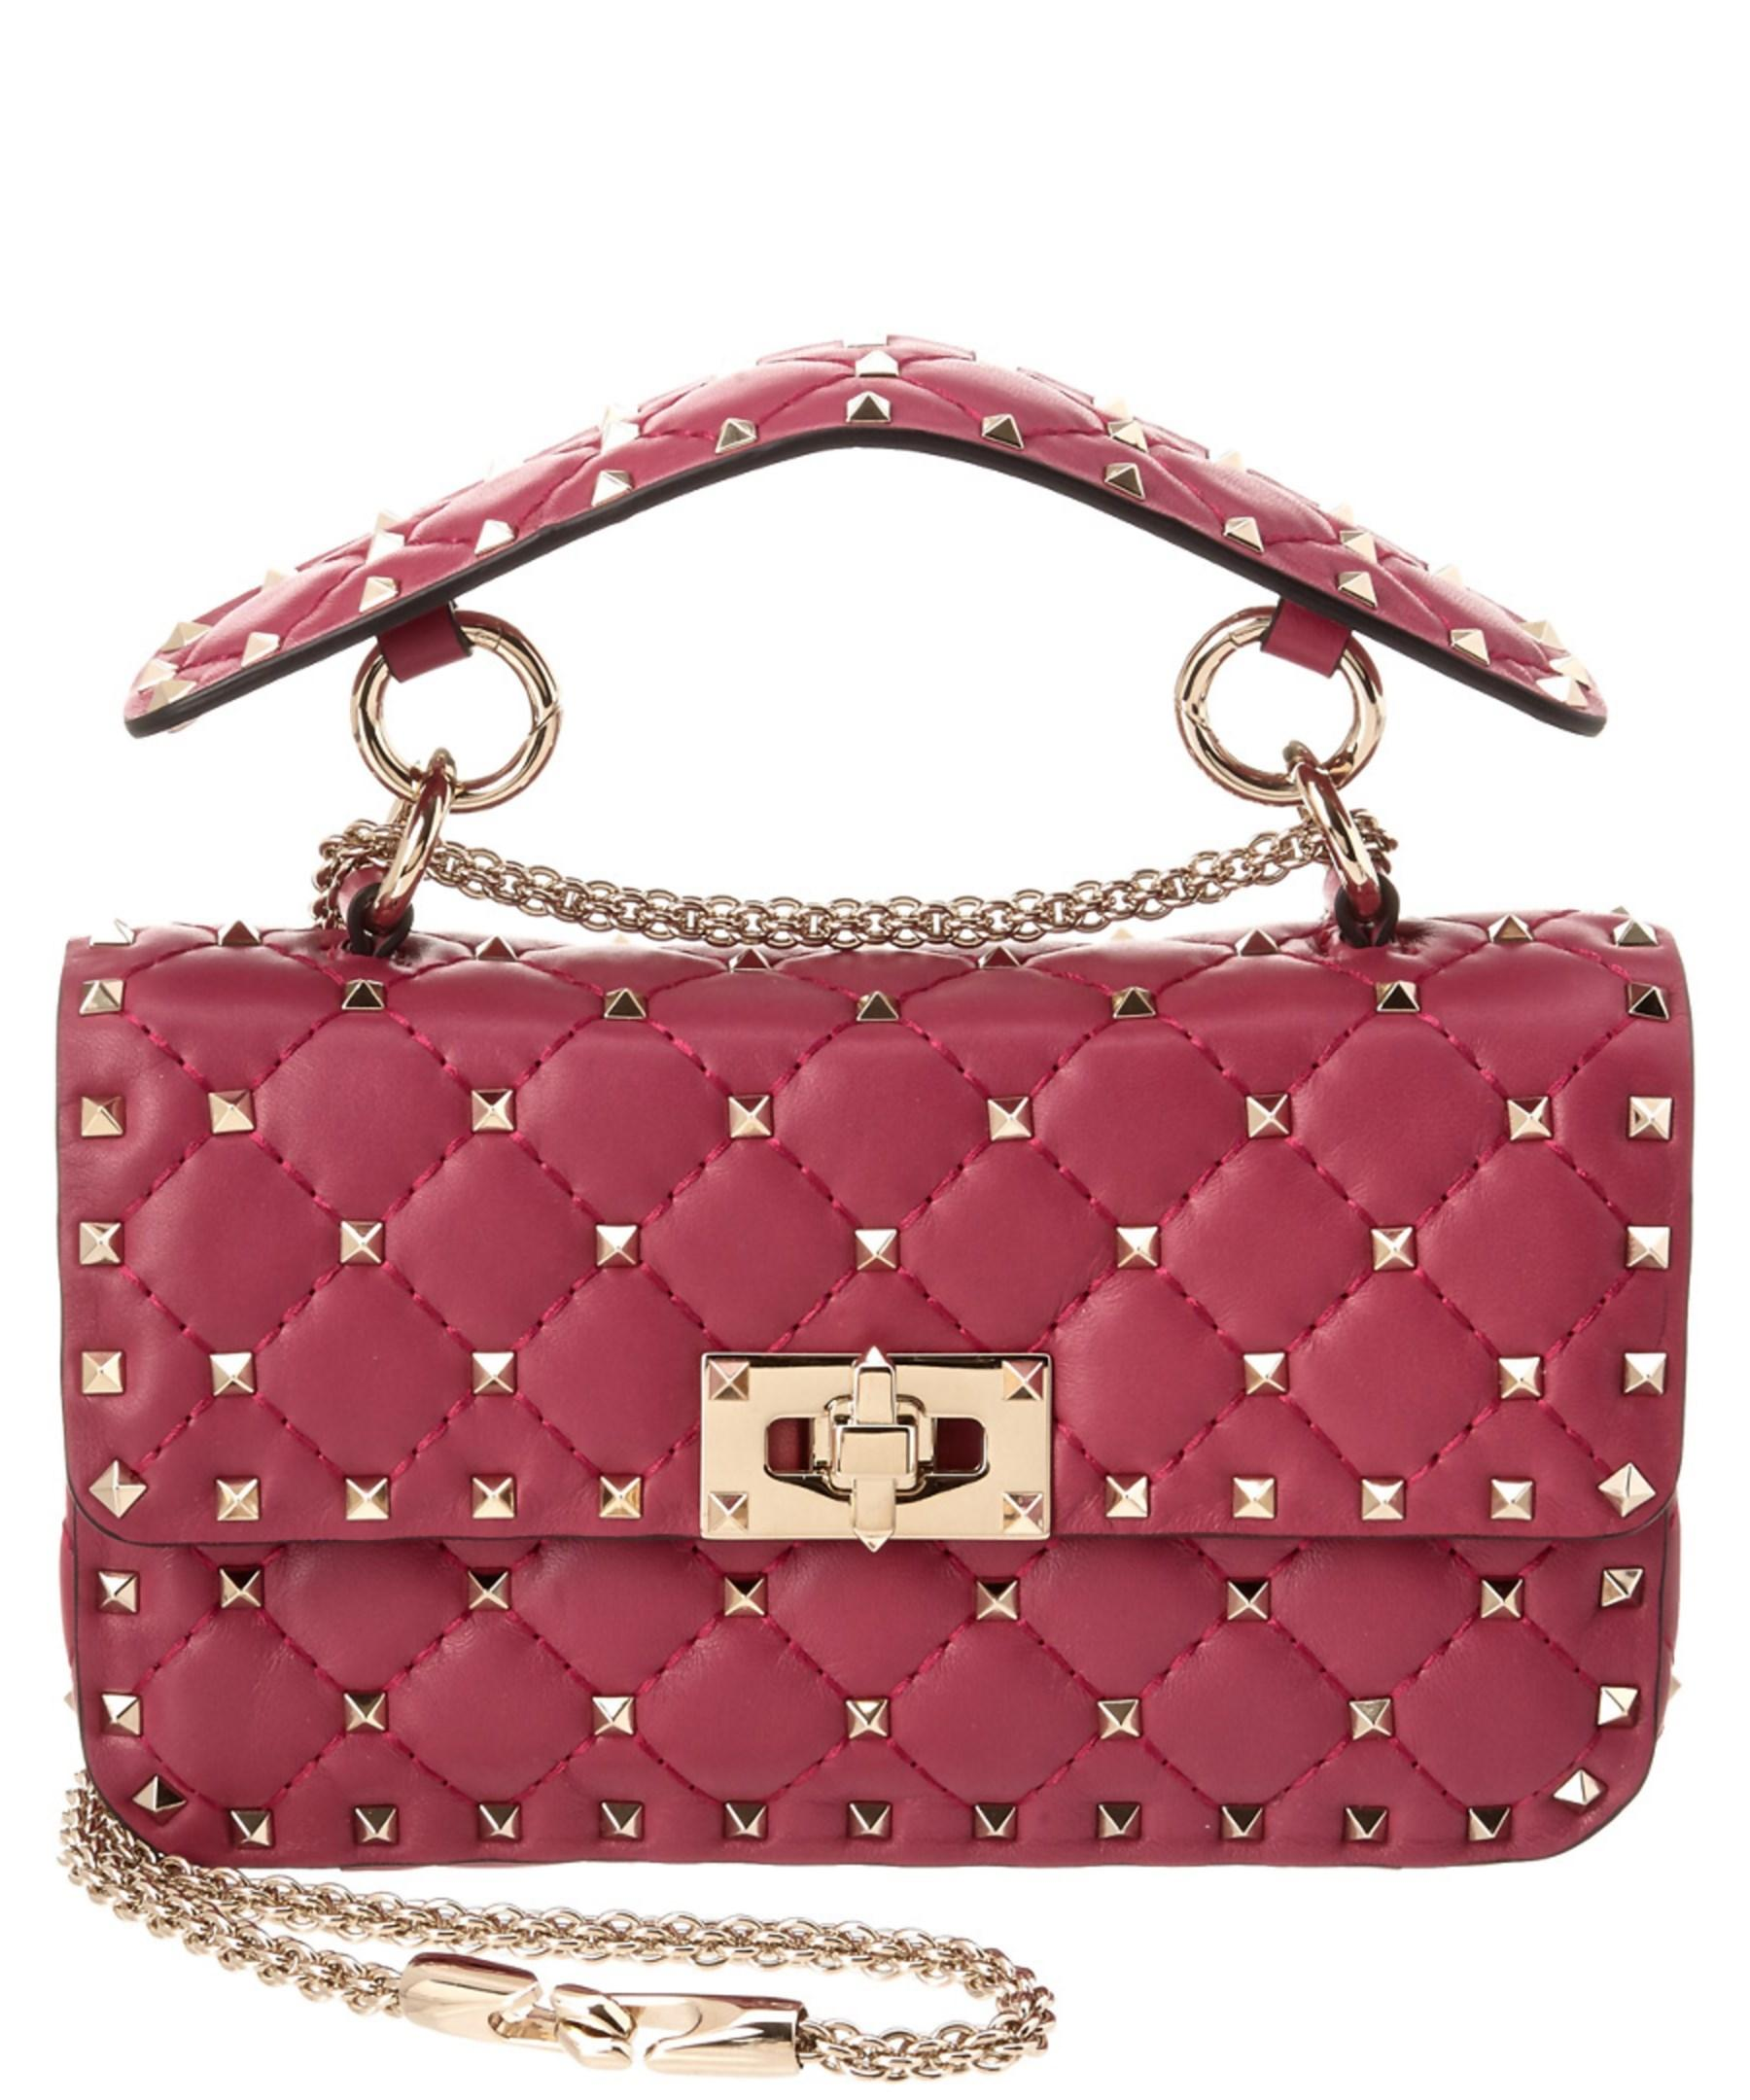 Valentino Rockstud Spike Small Leather Chain Bag In Pink